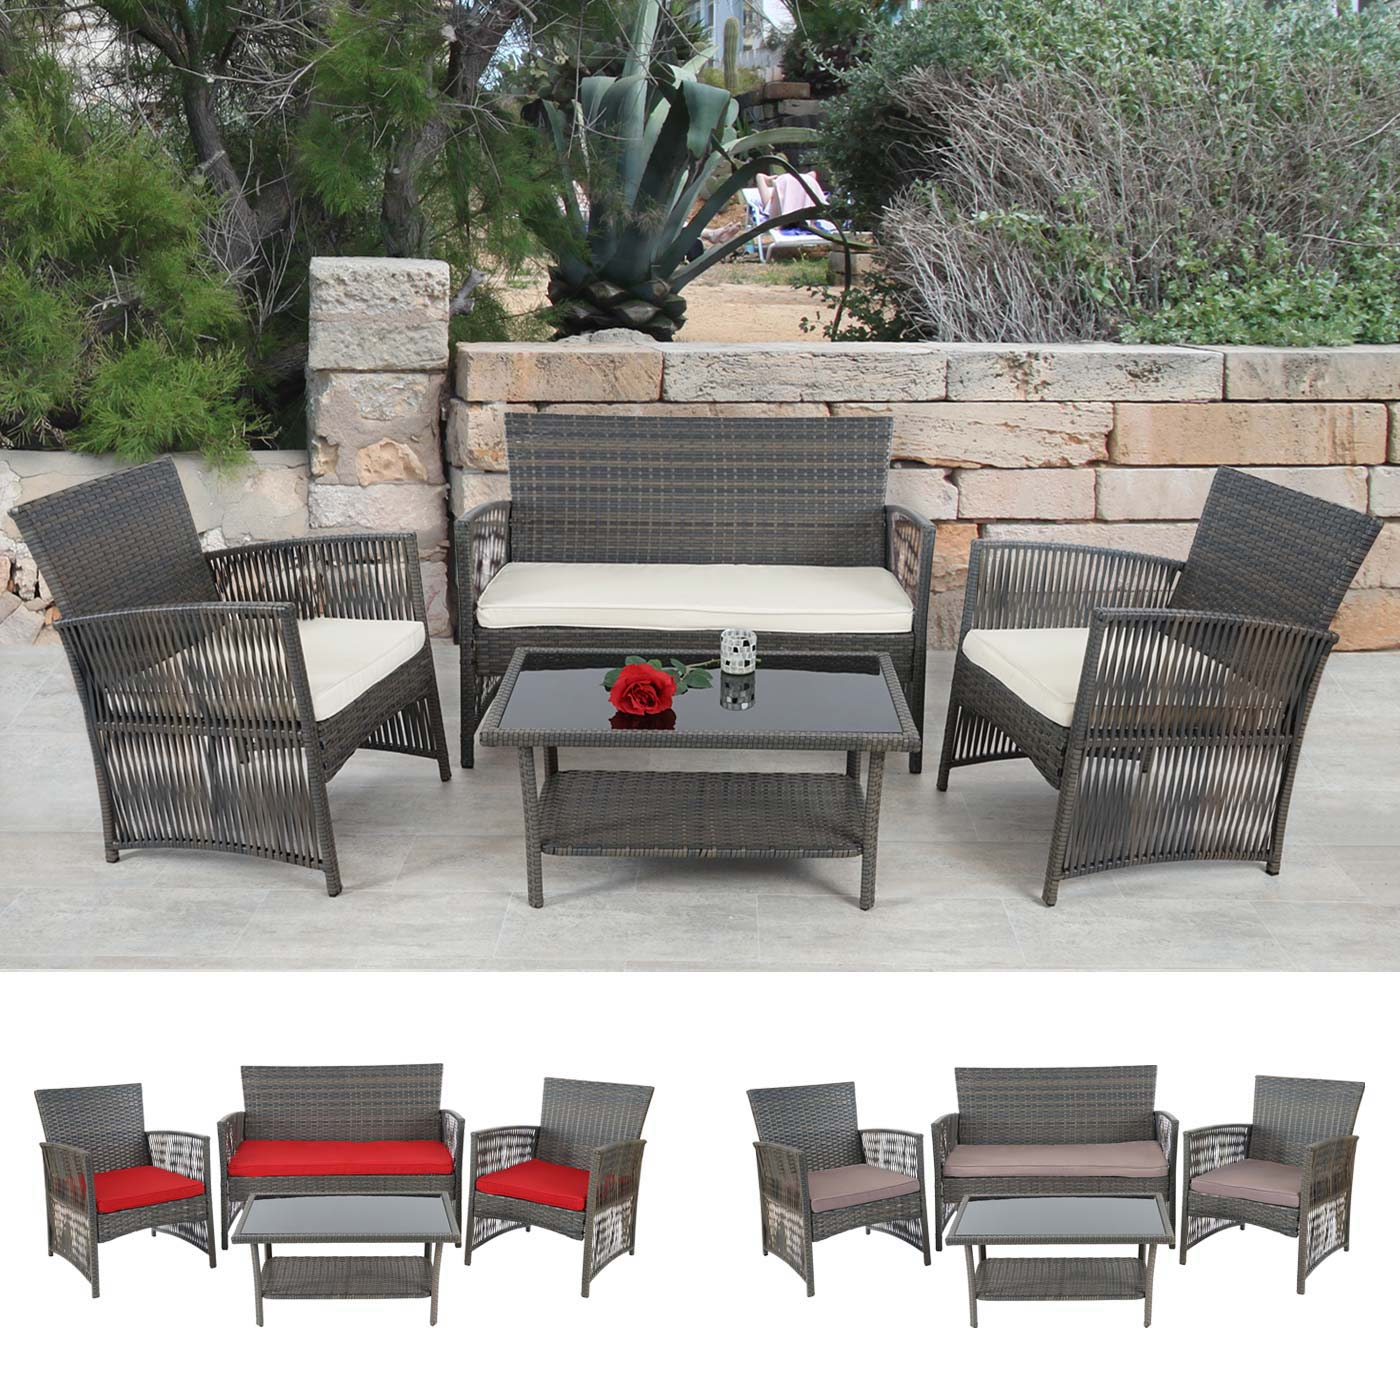 2 1 1 poly rattan garten garnitur cordoba sitzgruppe lounge set braun grau ebay. Black Bedroom Furniture Sets. Home Design Ideas